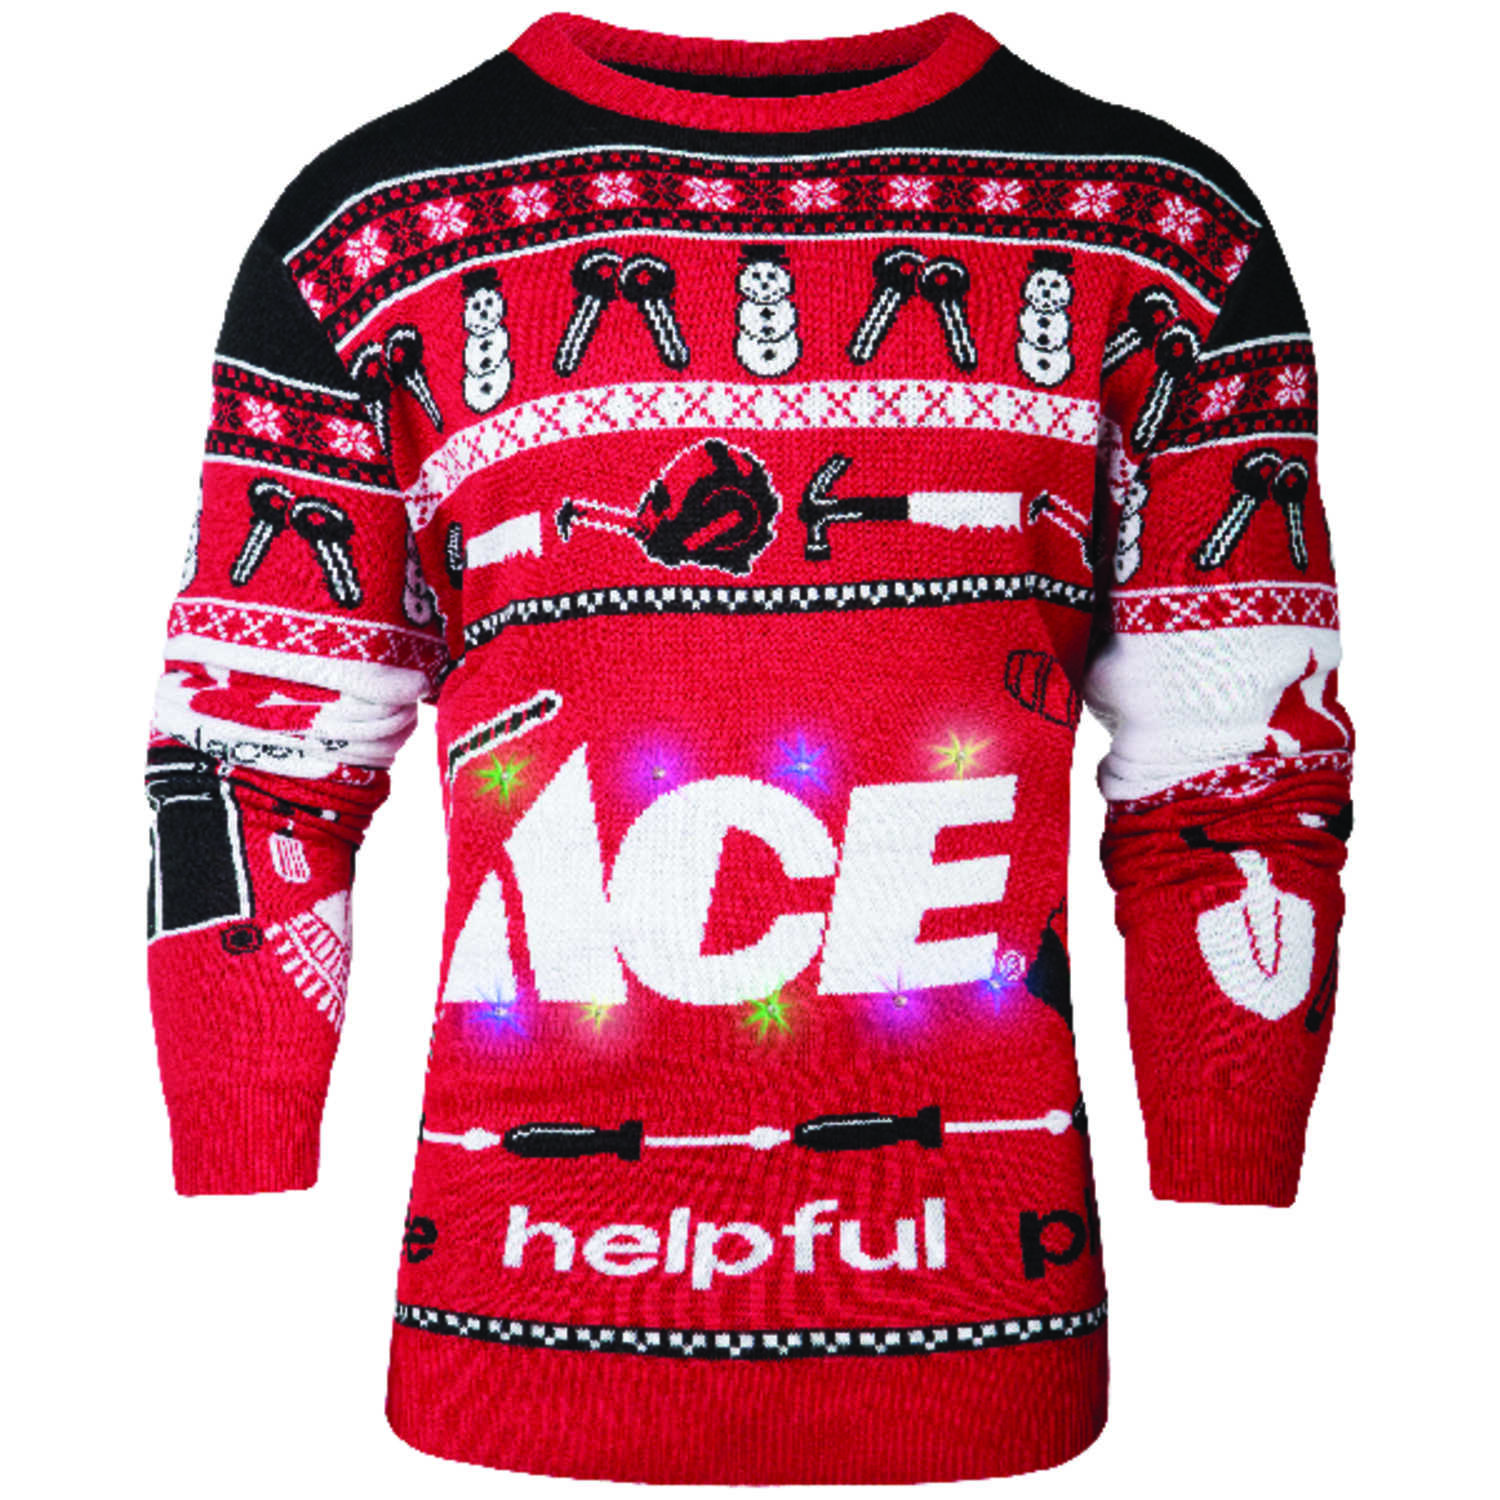 Ace S Long Sleeve Mens Crew Neck Redwhiteblack Ace Ugly Sweater